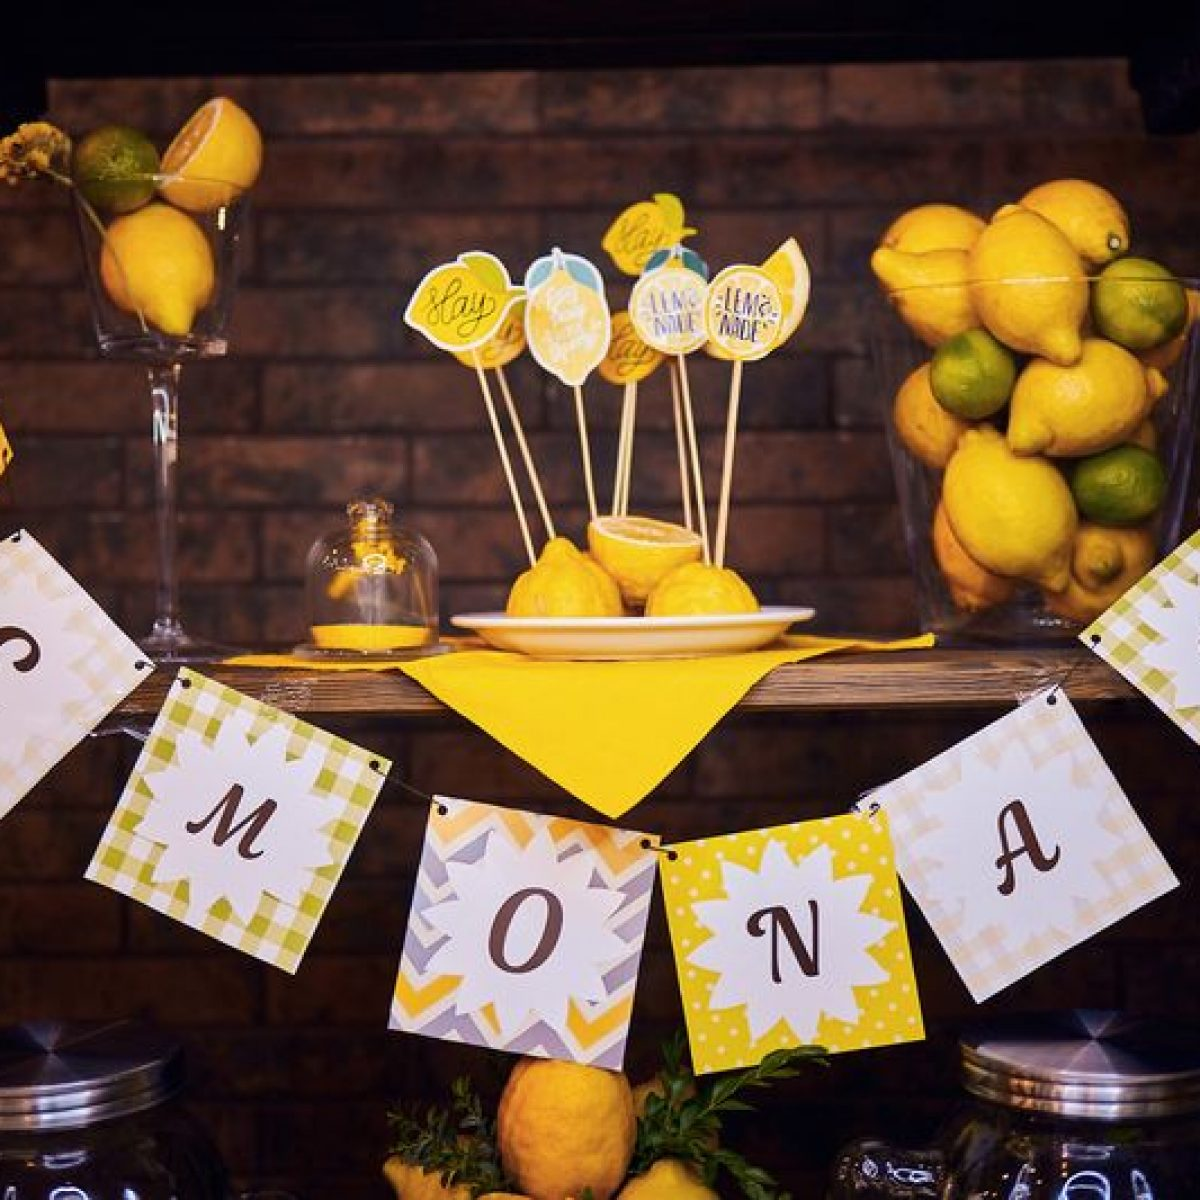 Lemon Party 03.07.2020